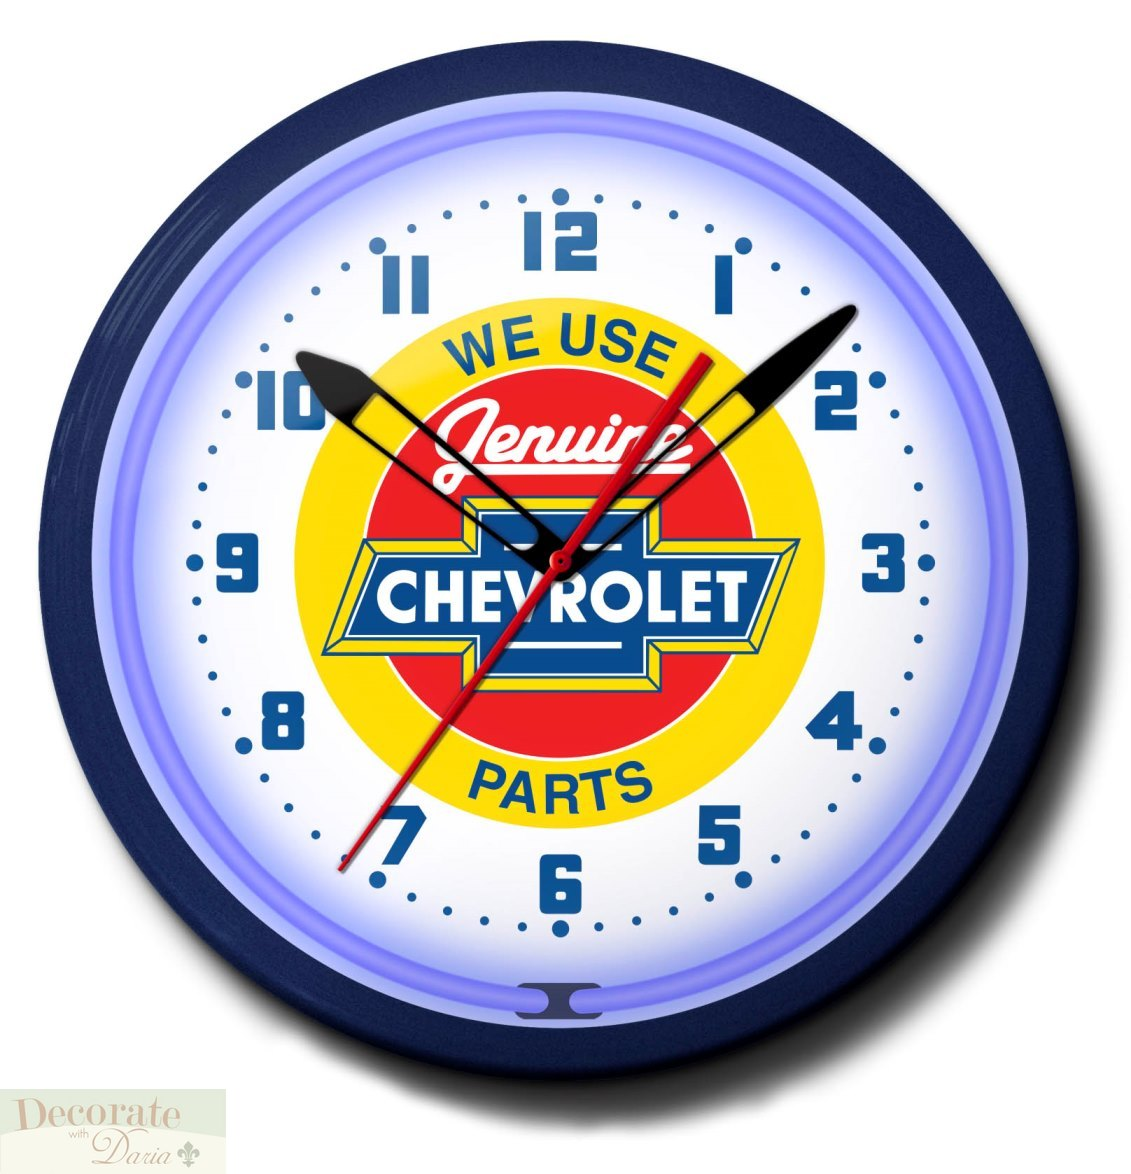 Chevrolet genuine parts chevy neon 20 wall clock made in the usa chevrolet genuine parts chevy neon 20 wall clock amipublicfo Images